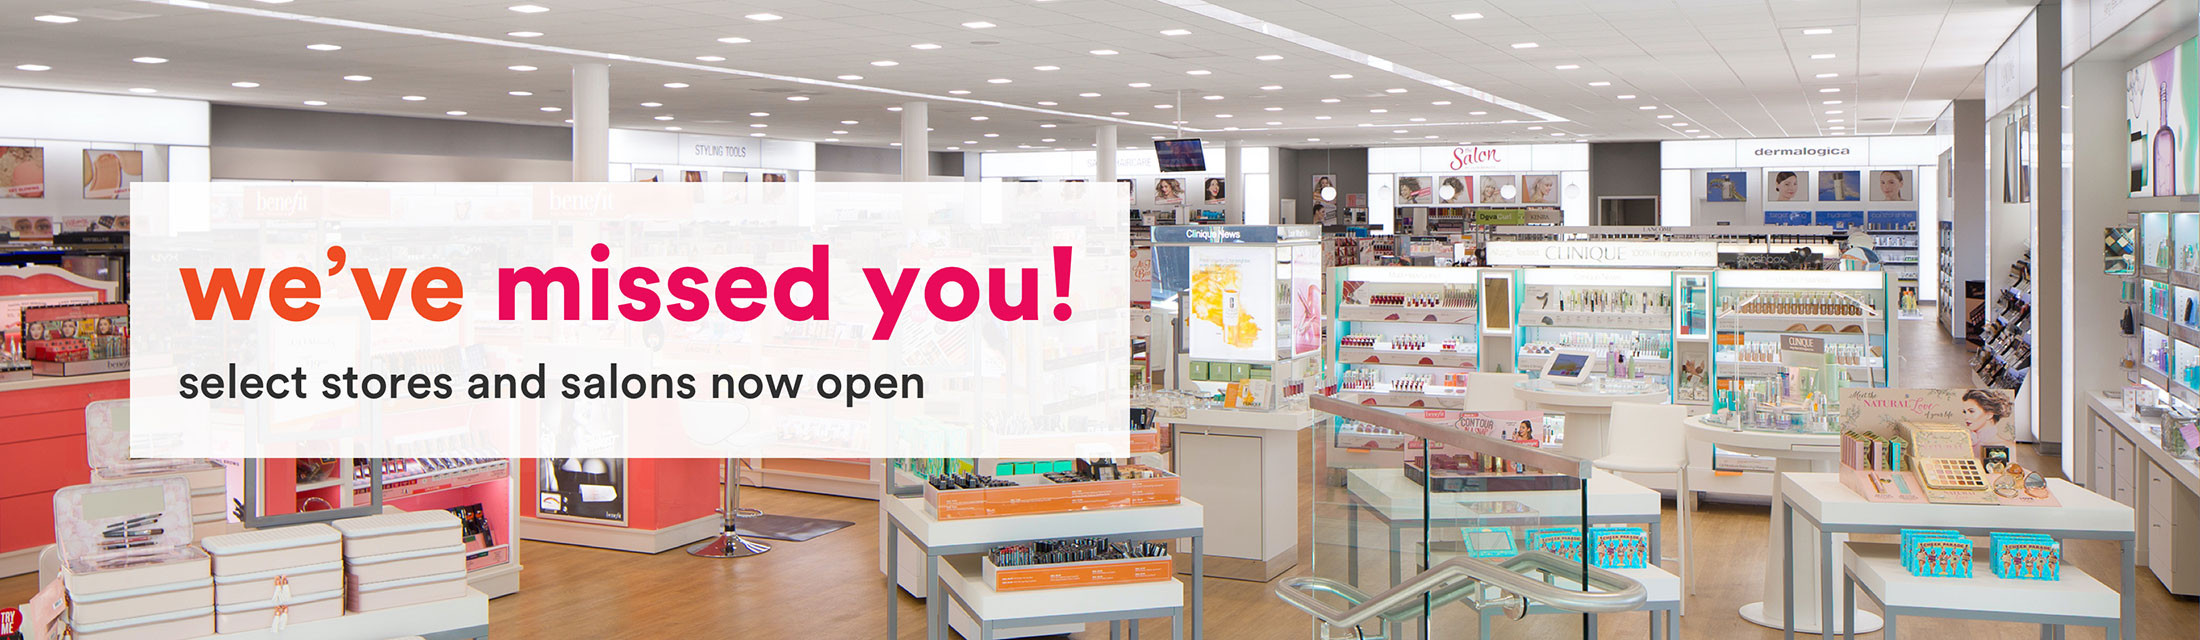 We've Missed You - Select Stores and Salons Open Now